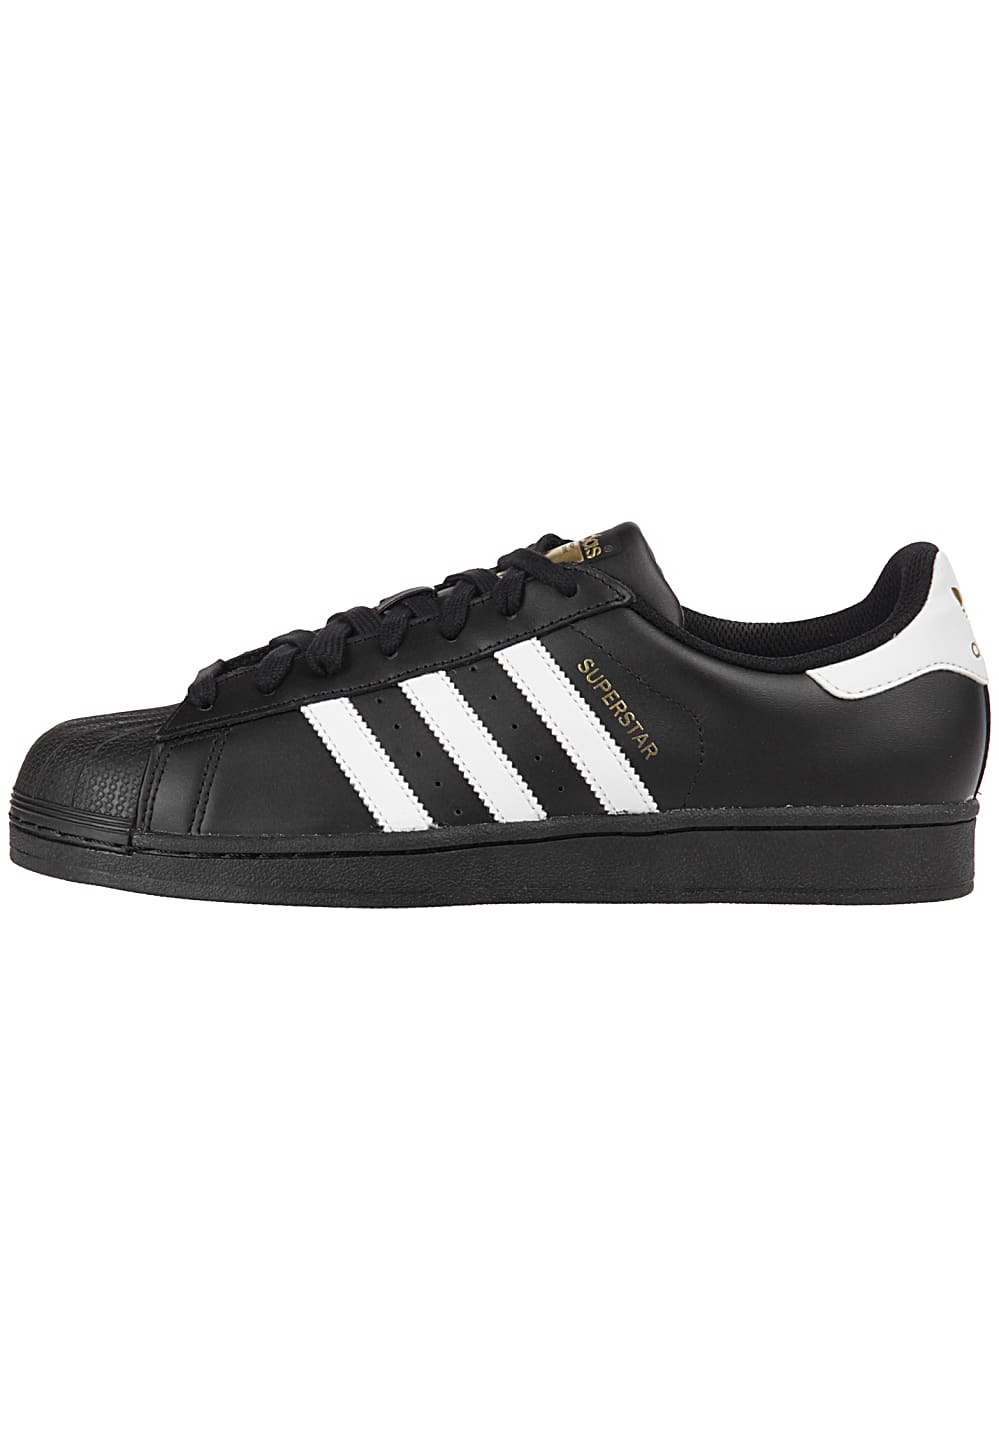 adidas Originals Superstar Foundation Sneaker Schwarz